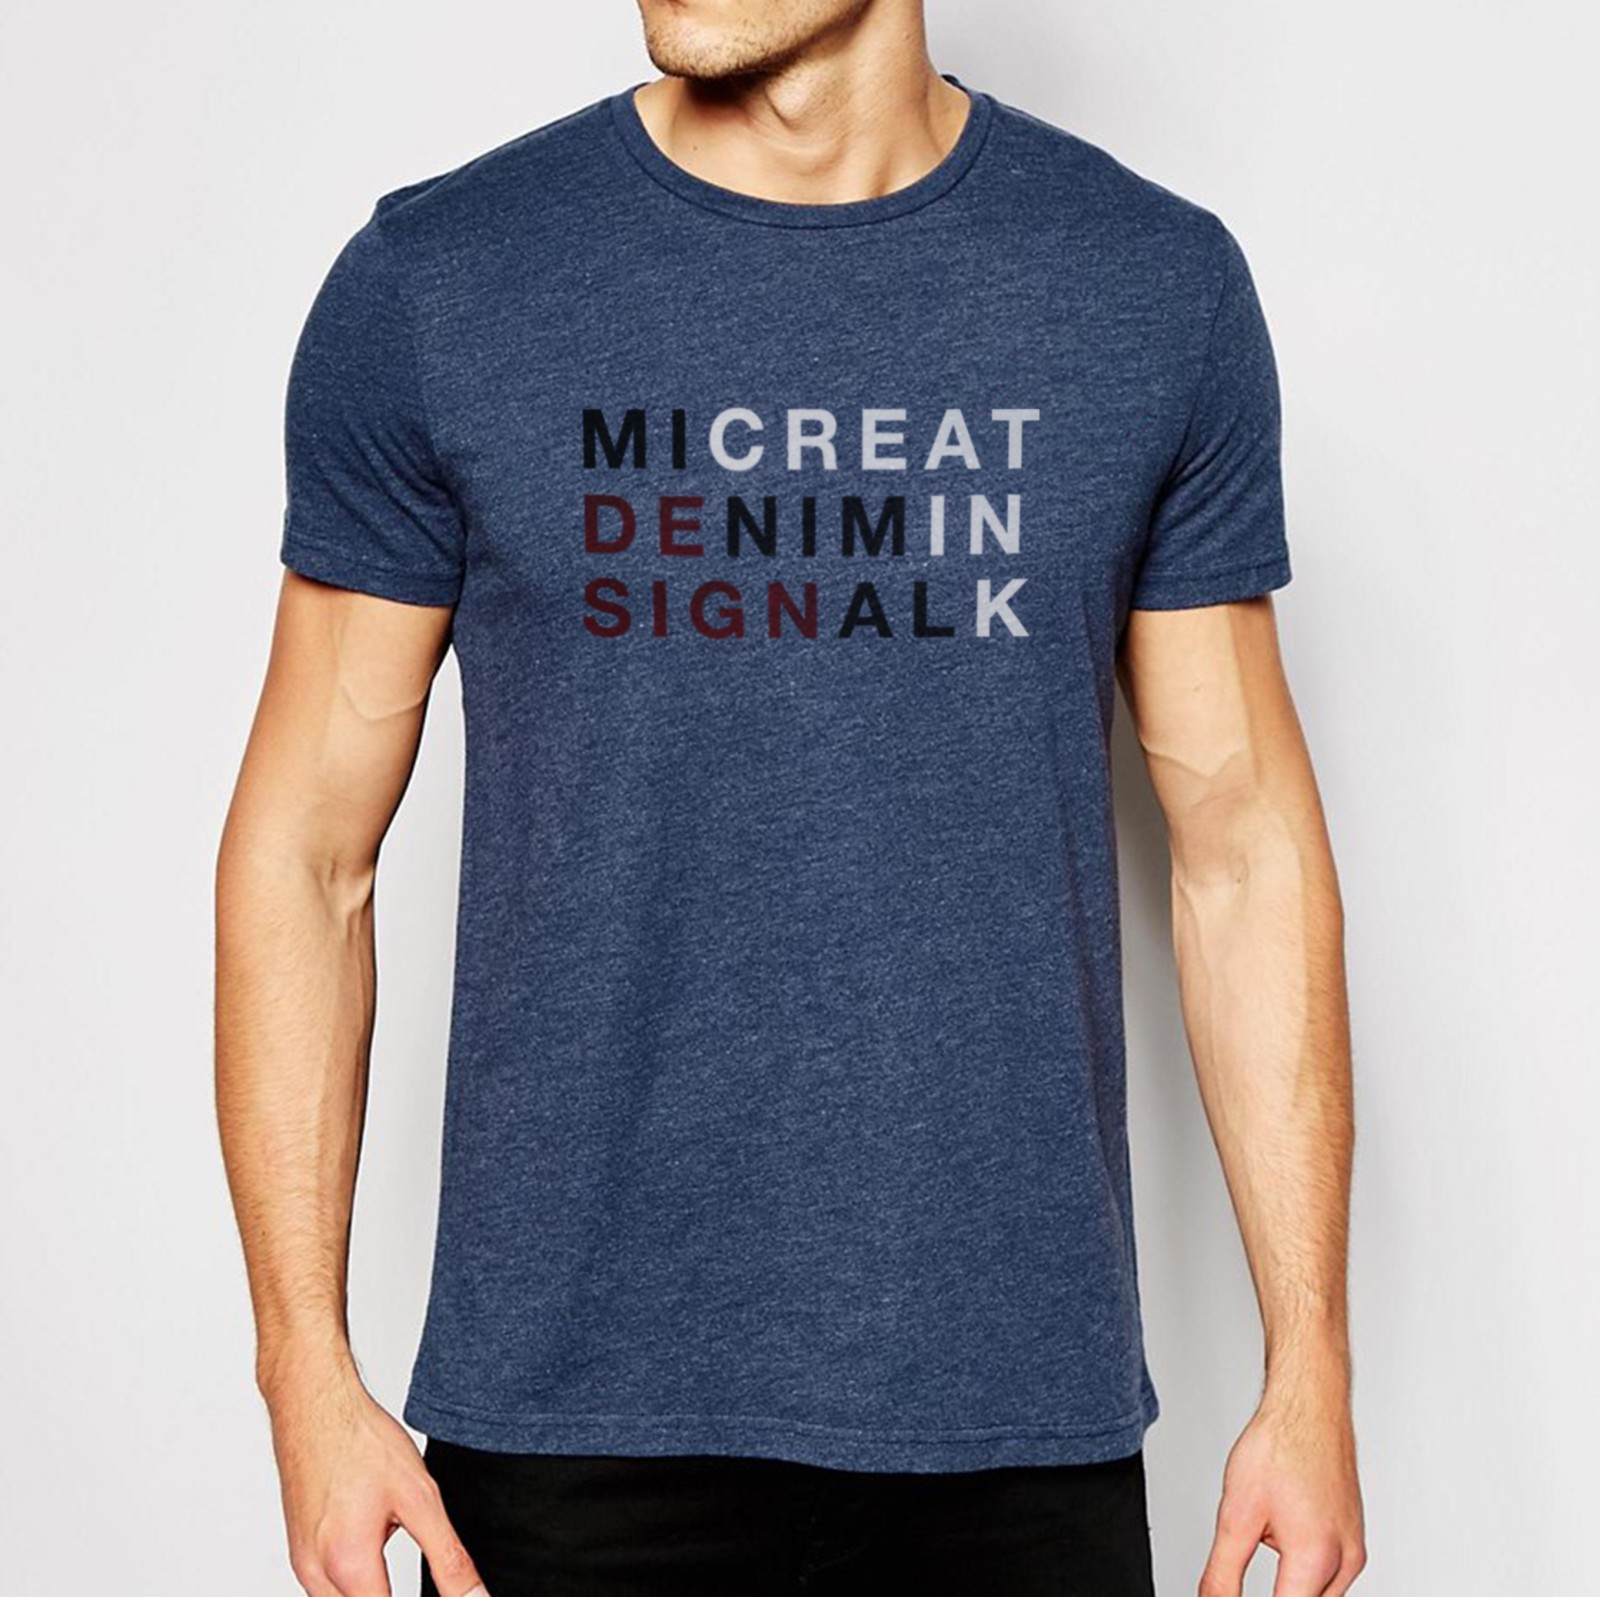 T-shirt design - Minimal Design - Designed by Creatink